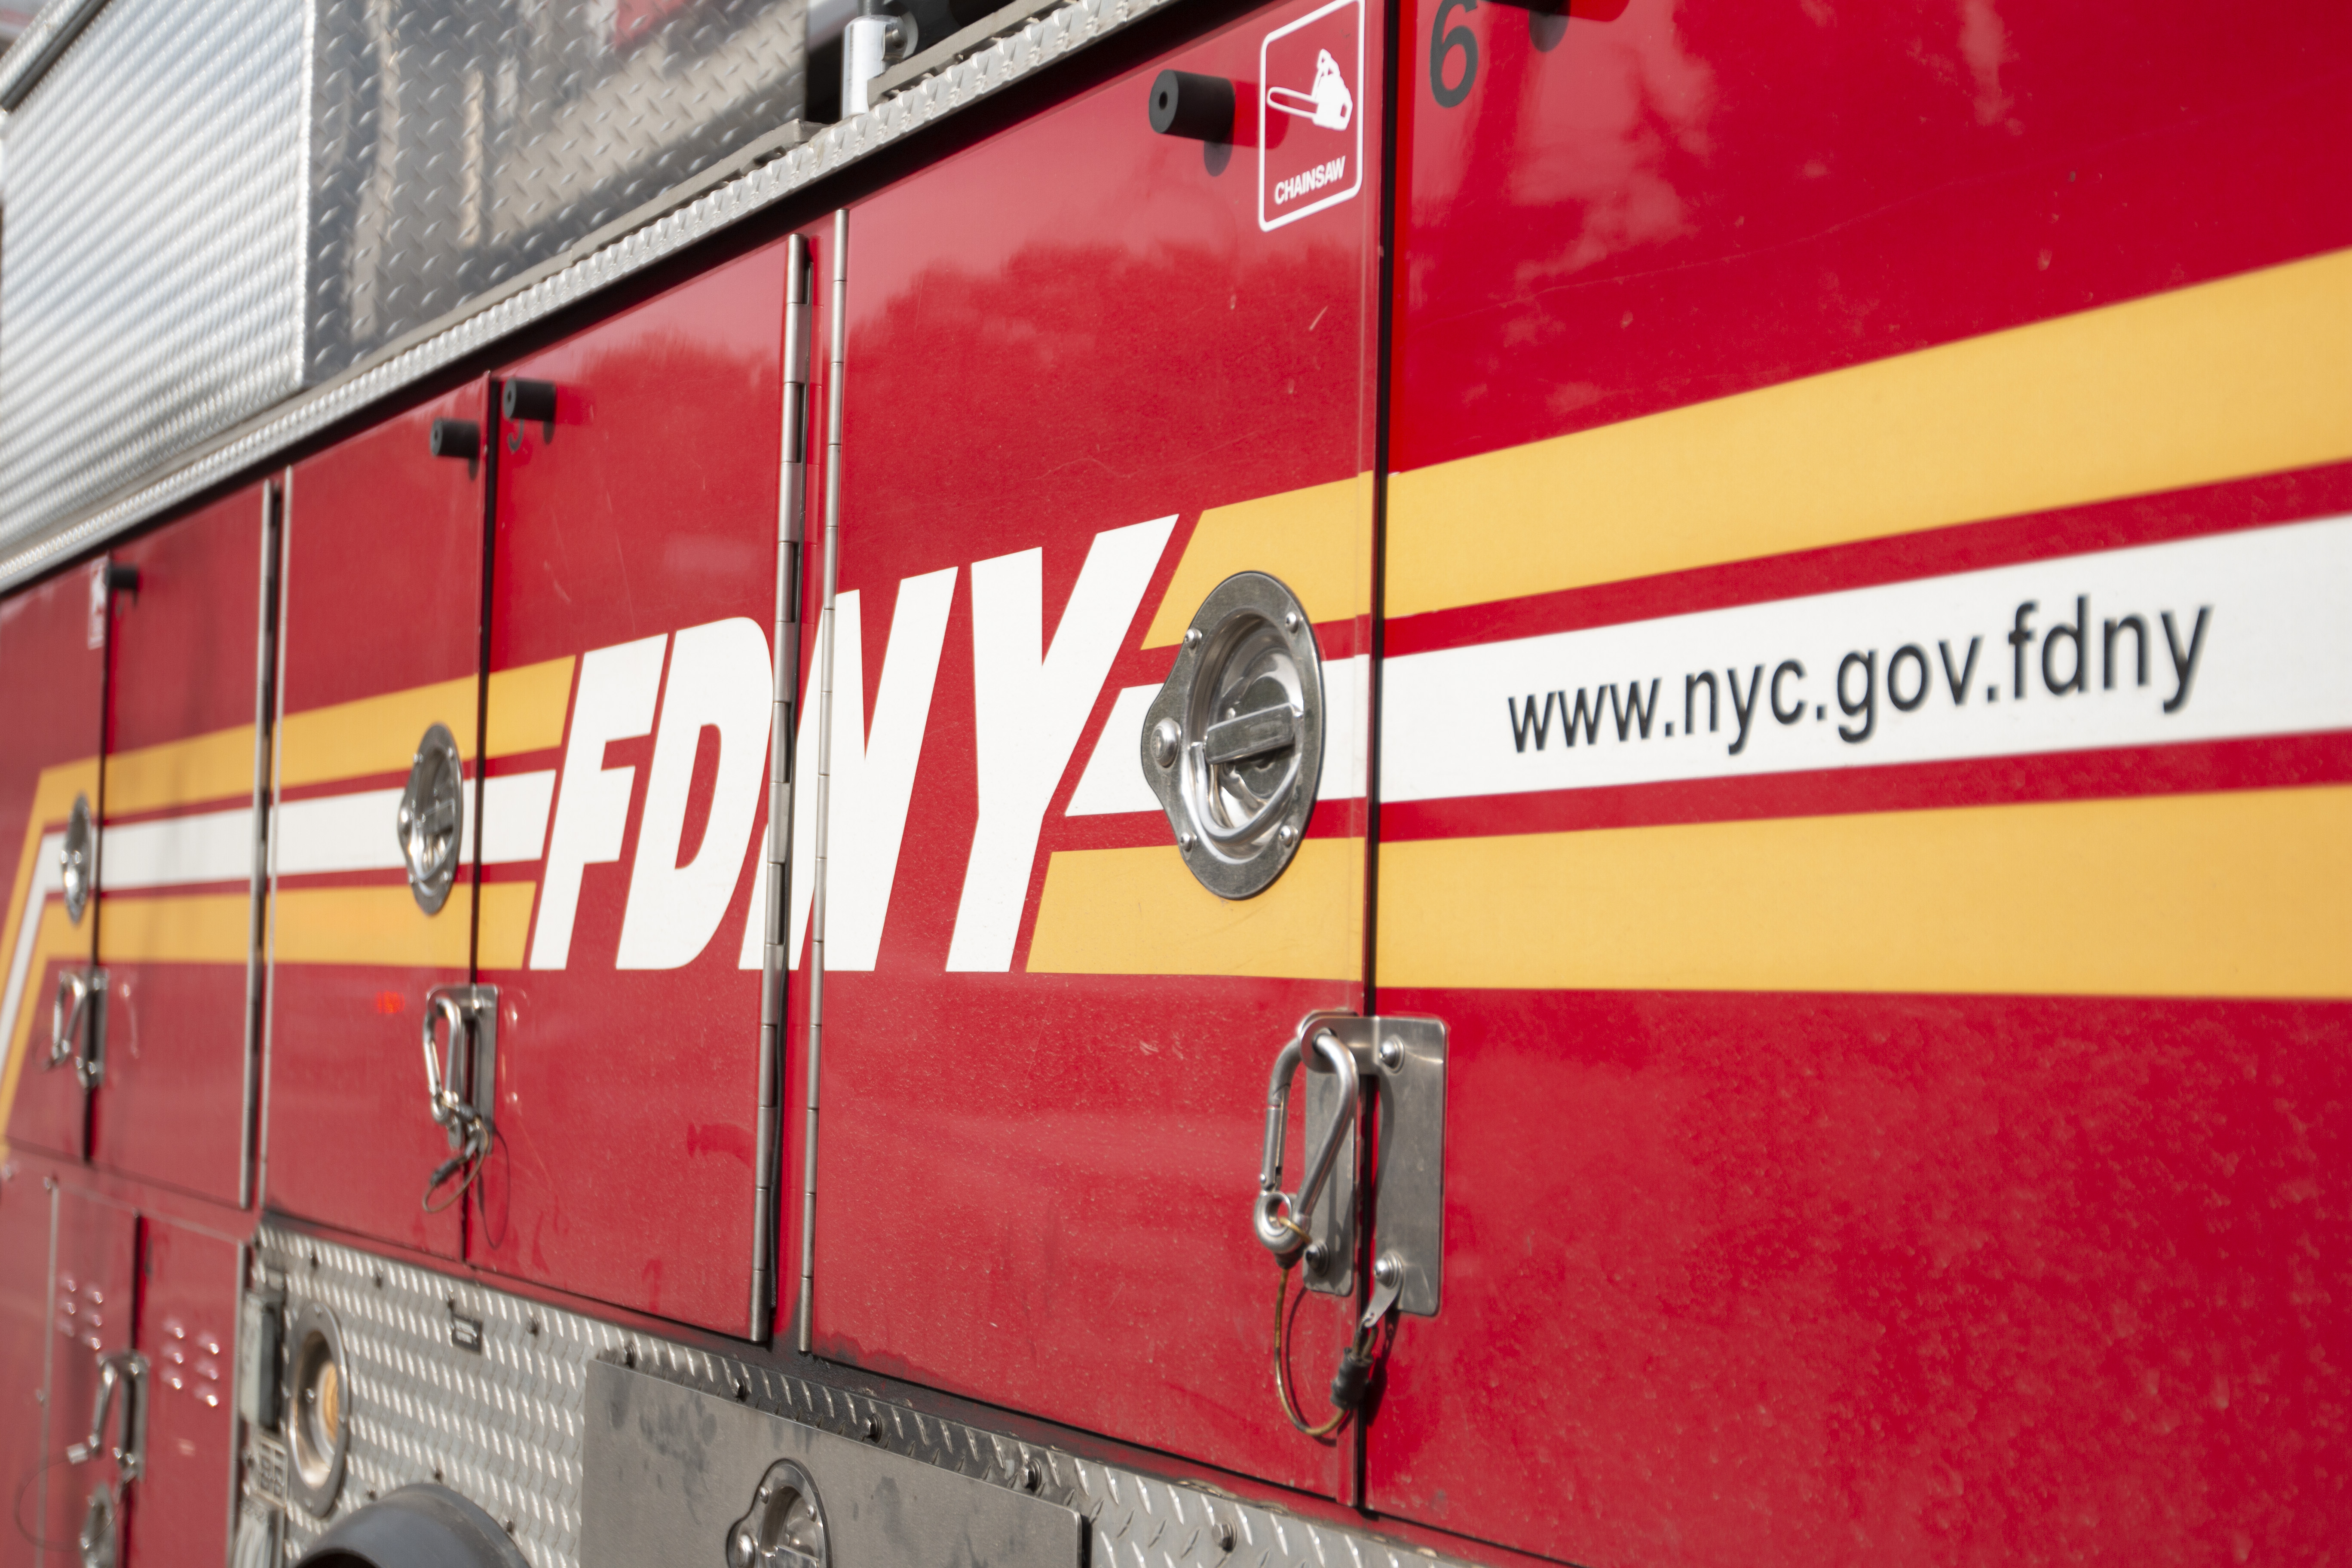 Off-duty firefighter from S.I. allegedly took photos under unsuspecting woman's skirt in Manhattan